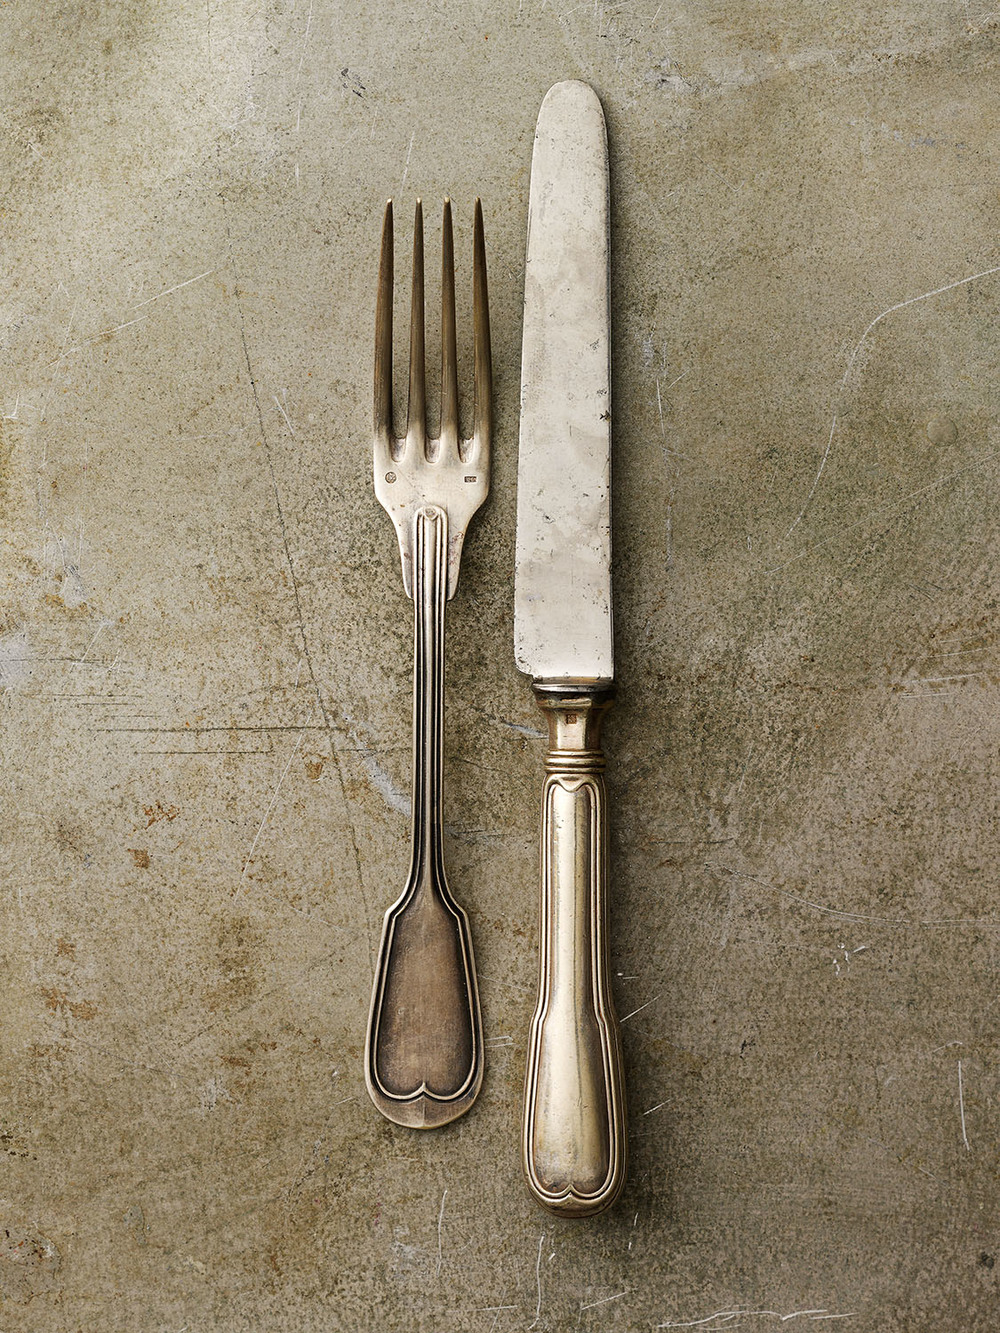 #8 Knife & Fork